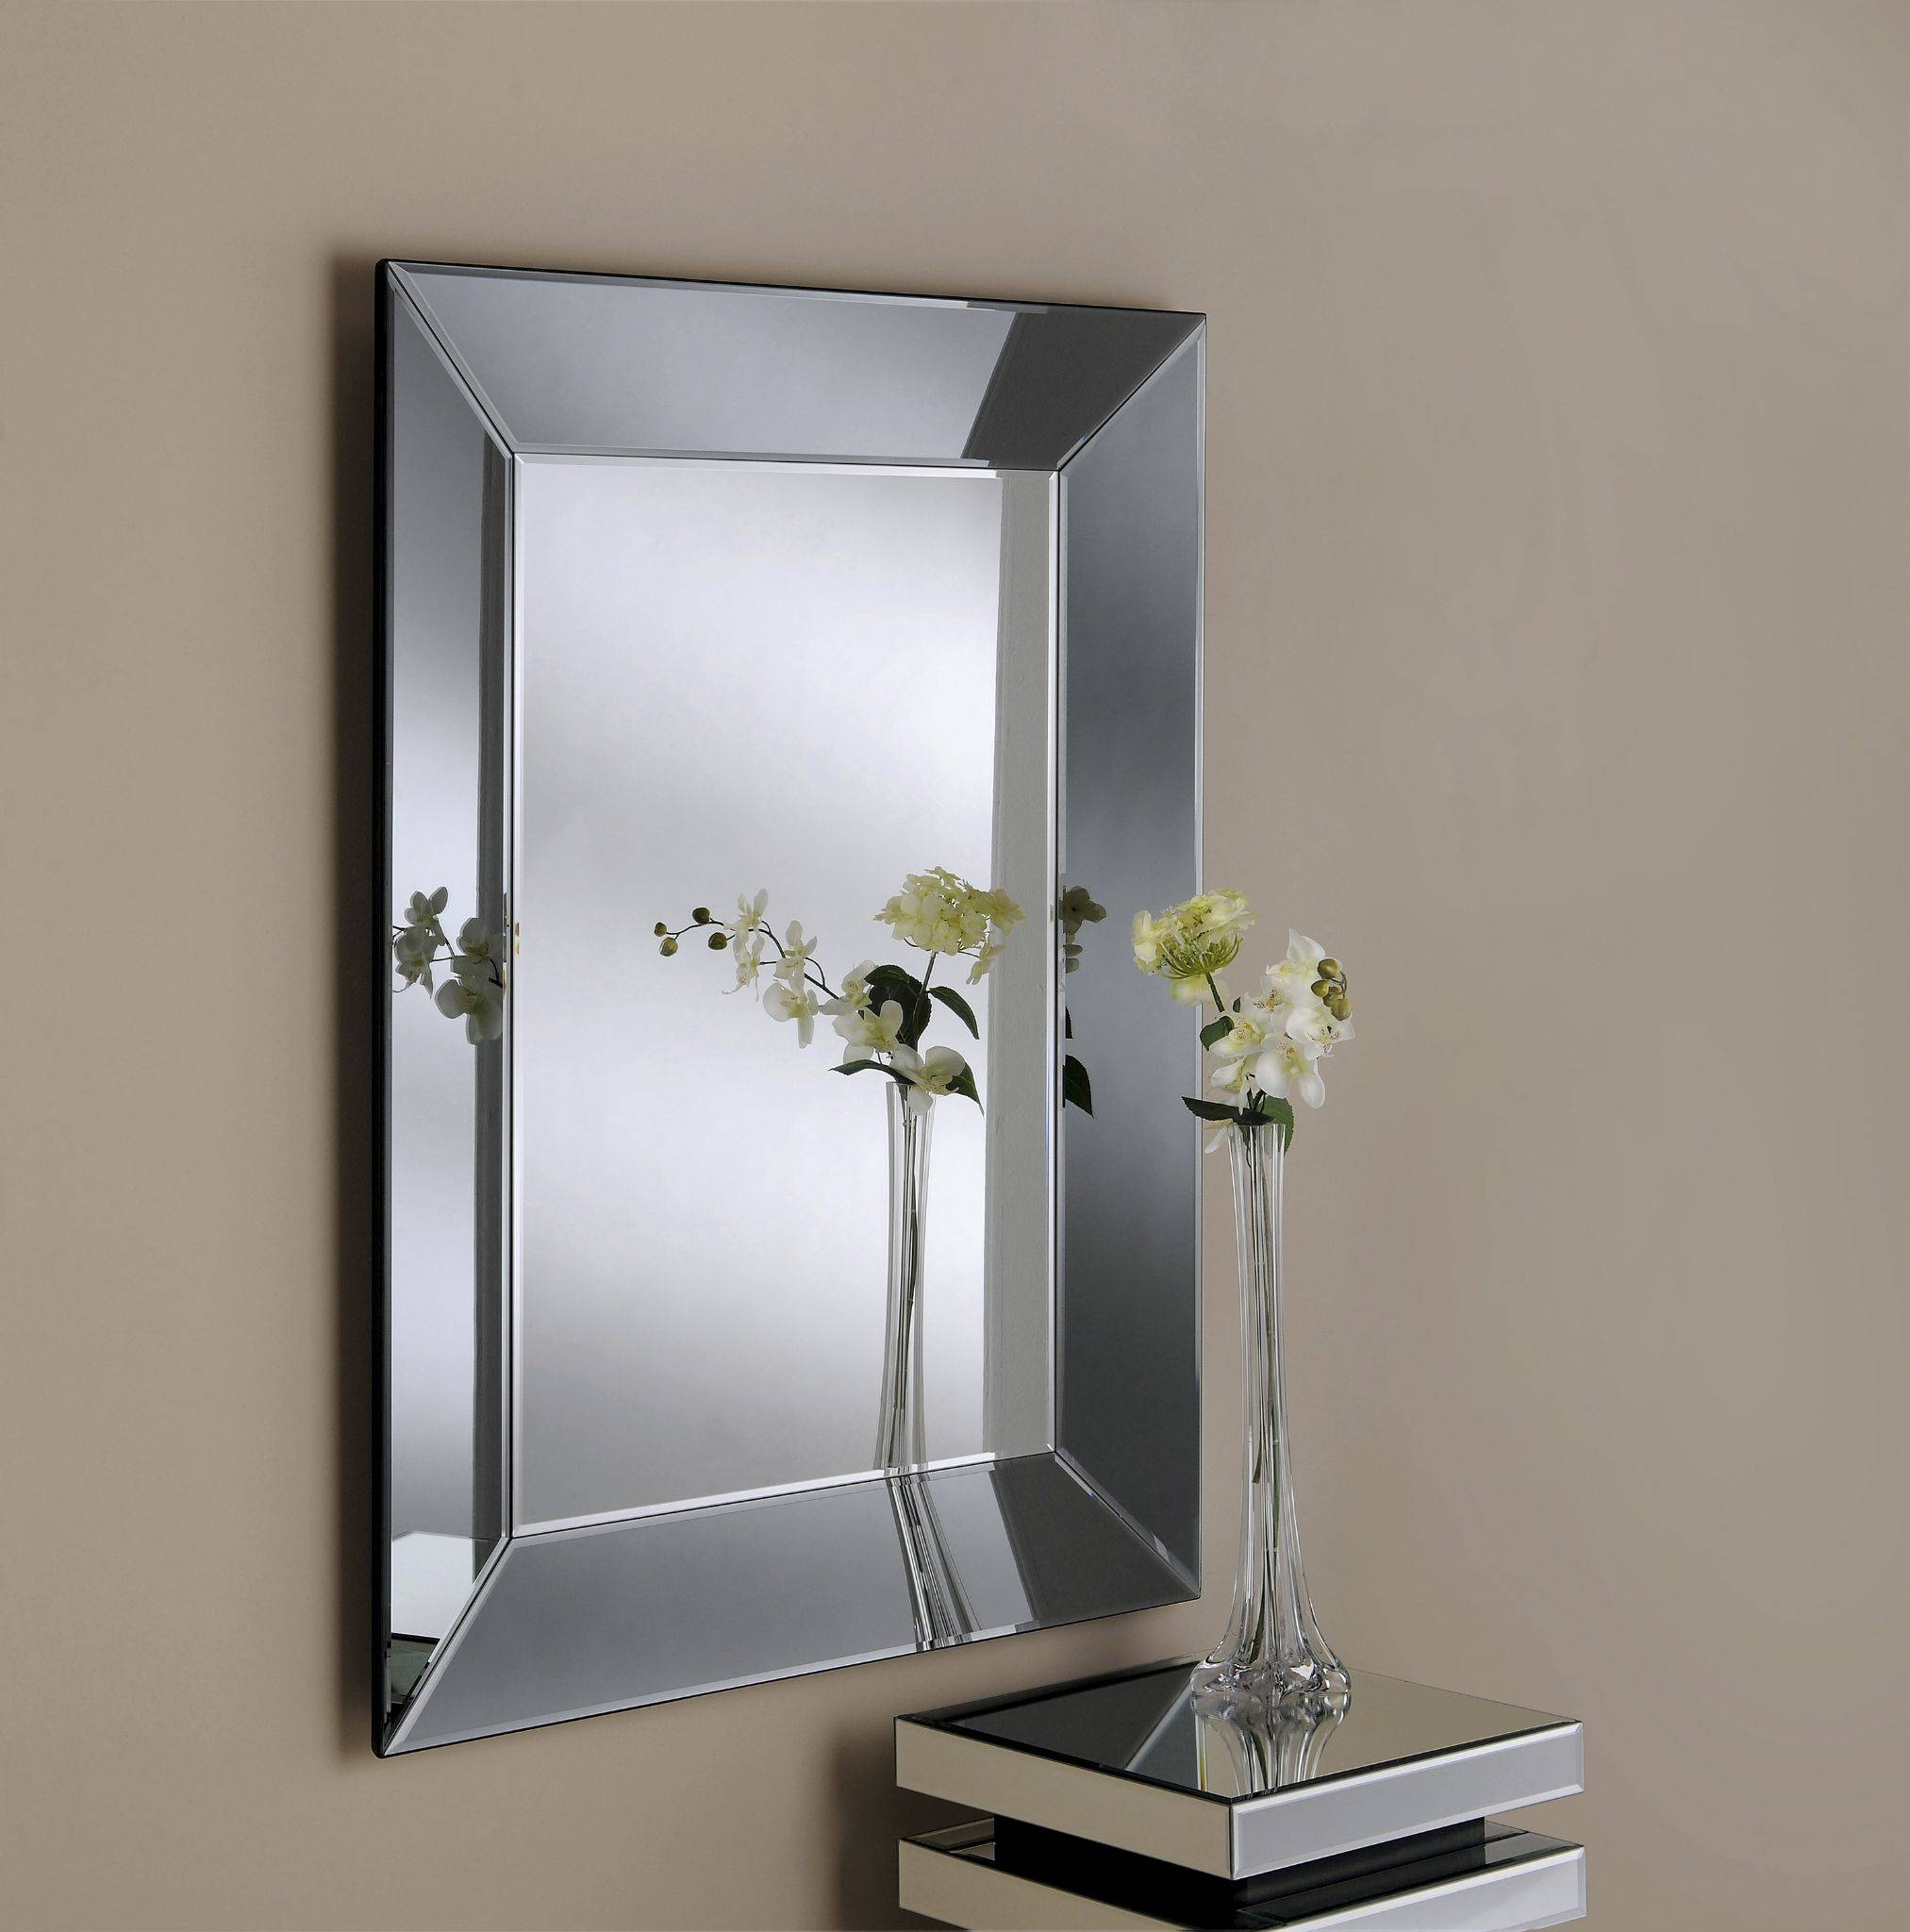 Bevelled Mirror As Indoor Decorative Touch | Lgilab | Modern With Bevelled Mirrors Glass (View 10 of 25)